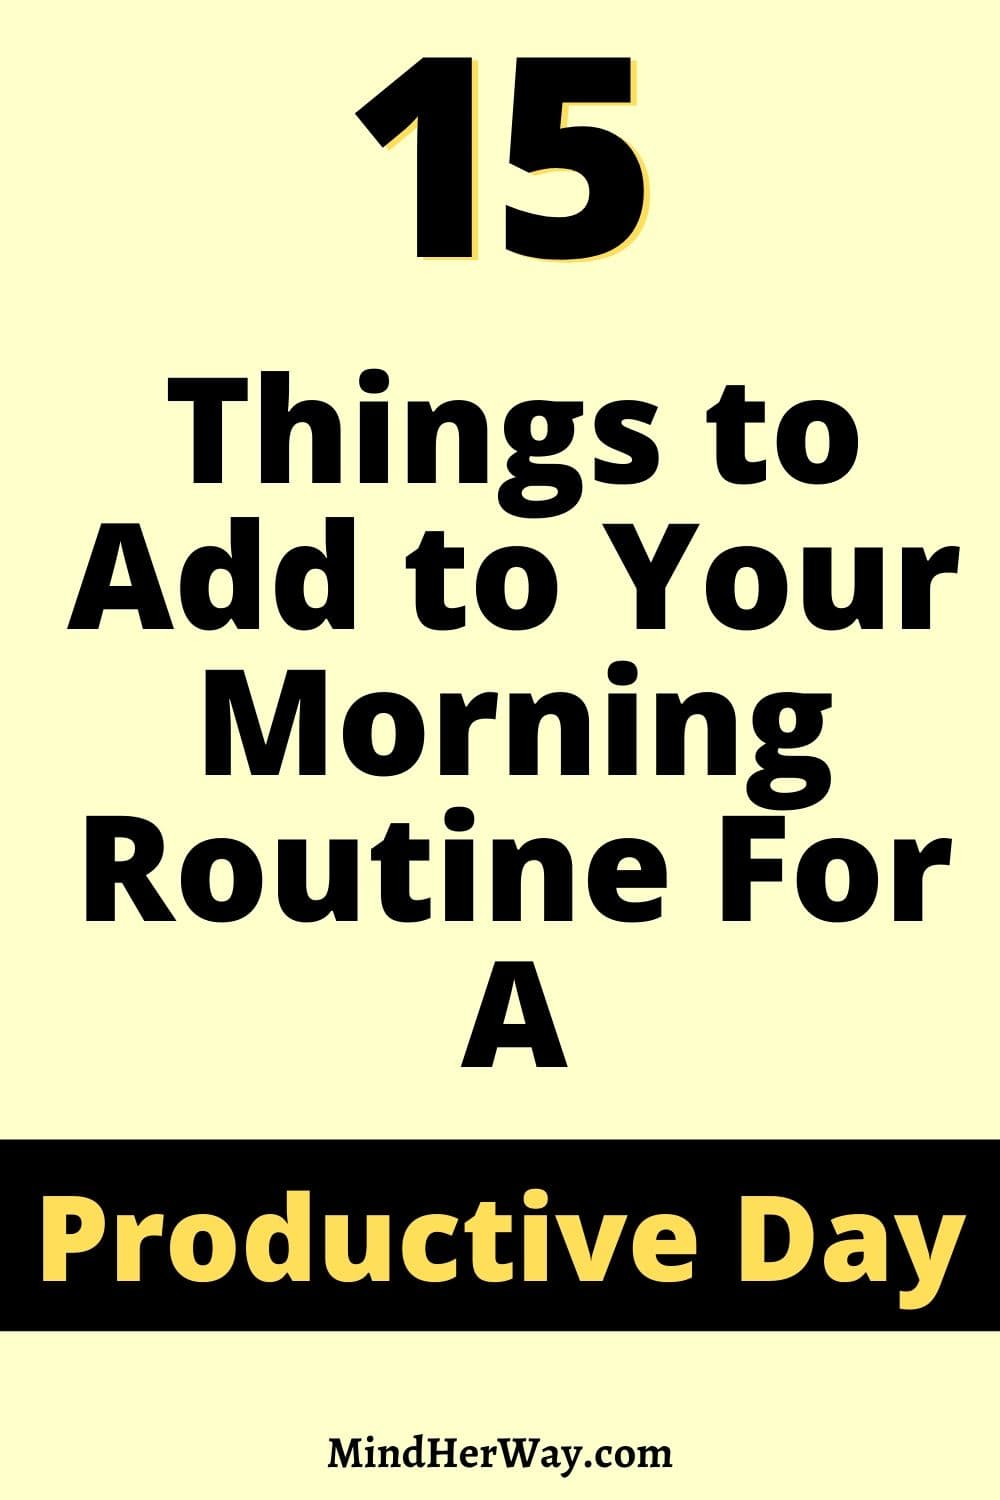 15 Things to Add to Your Morning Routine For A Productive Day